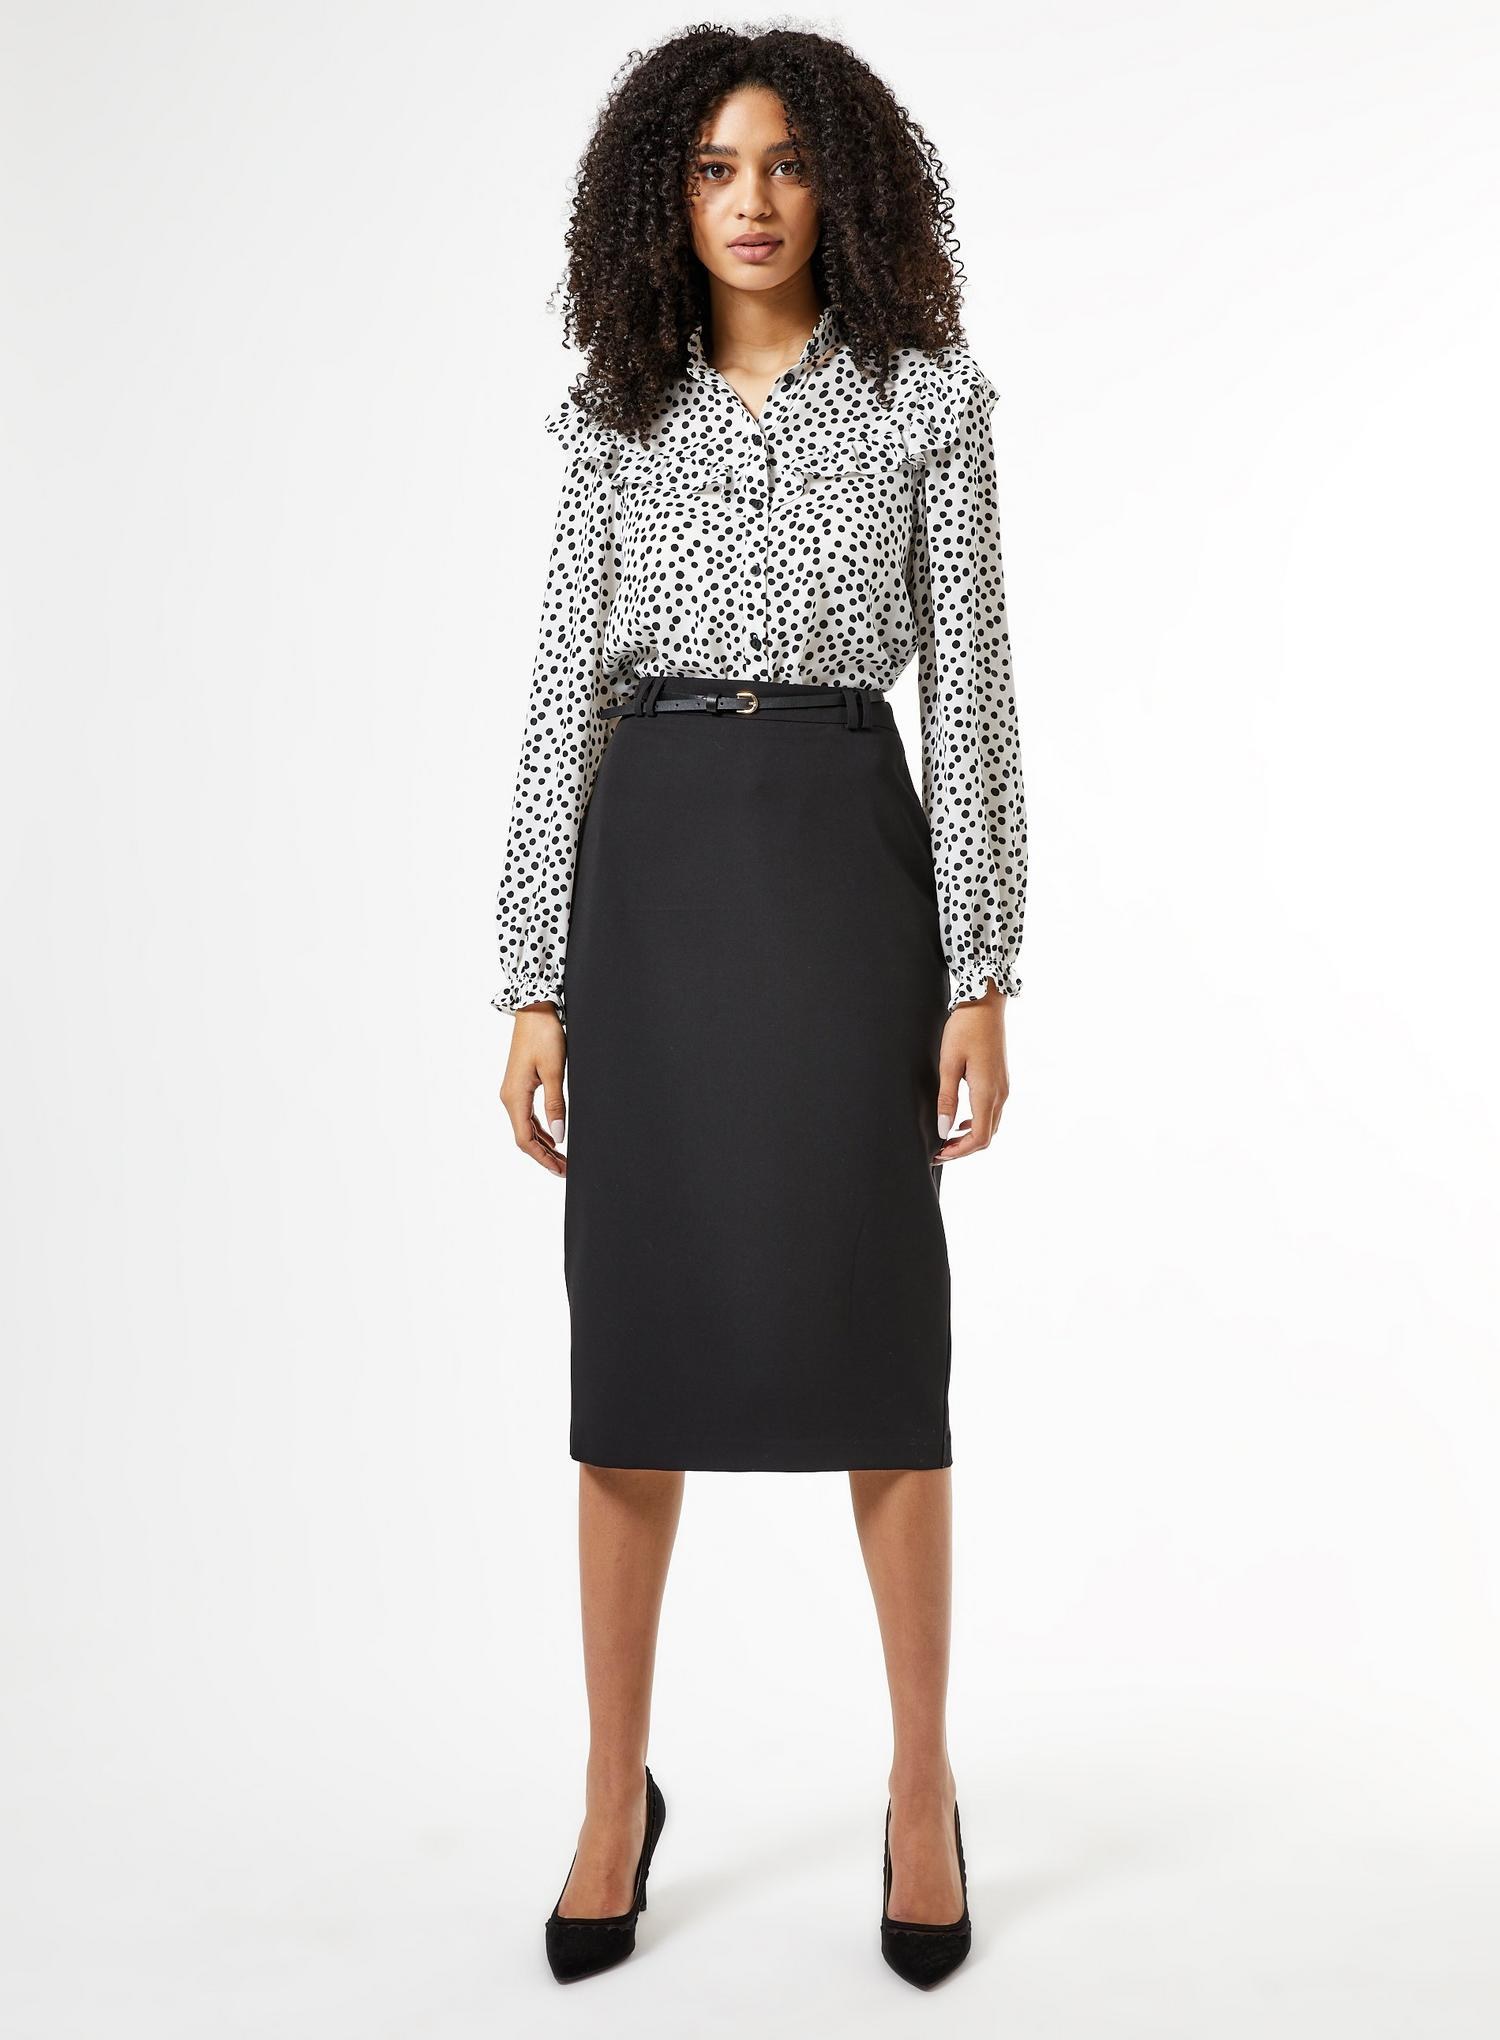 105 Black Tailored Pencil Skirt image number 1